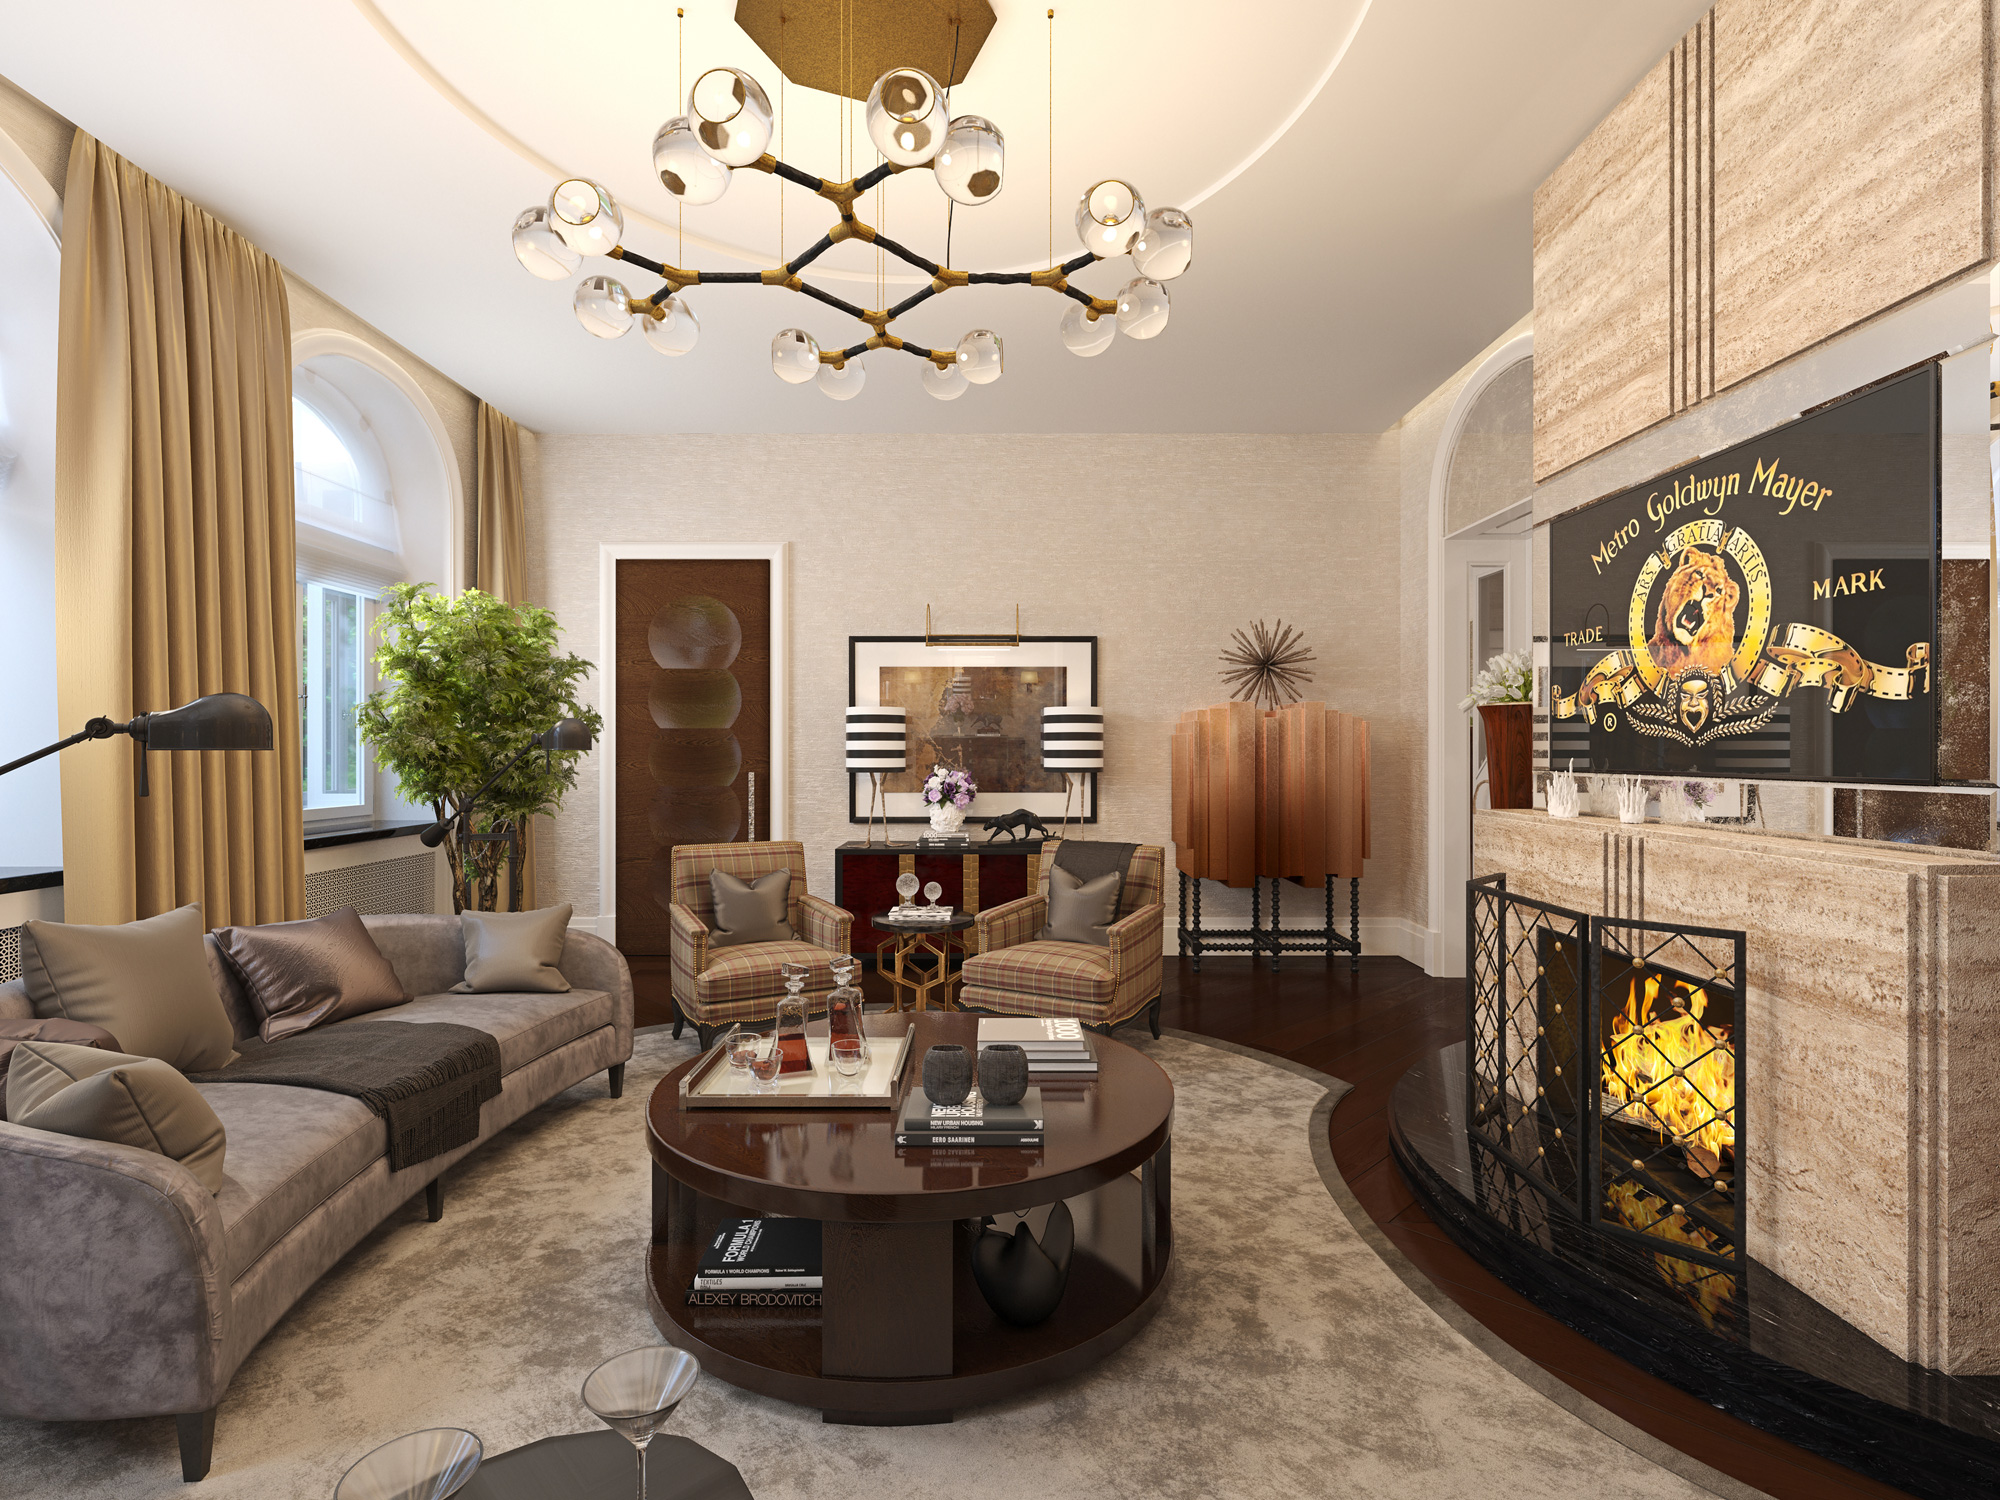 6 luxury living room ideas with incredible lighting Luxury design ideas